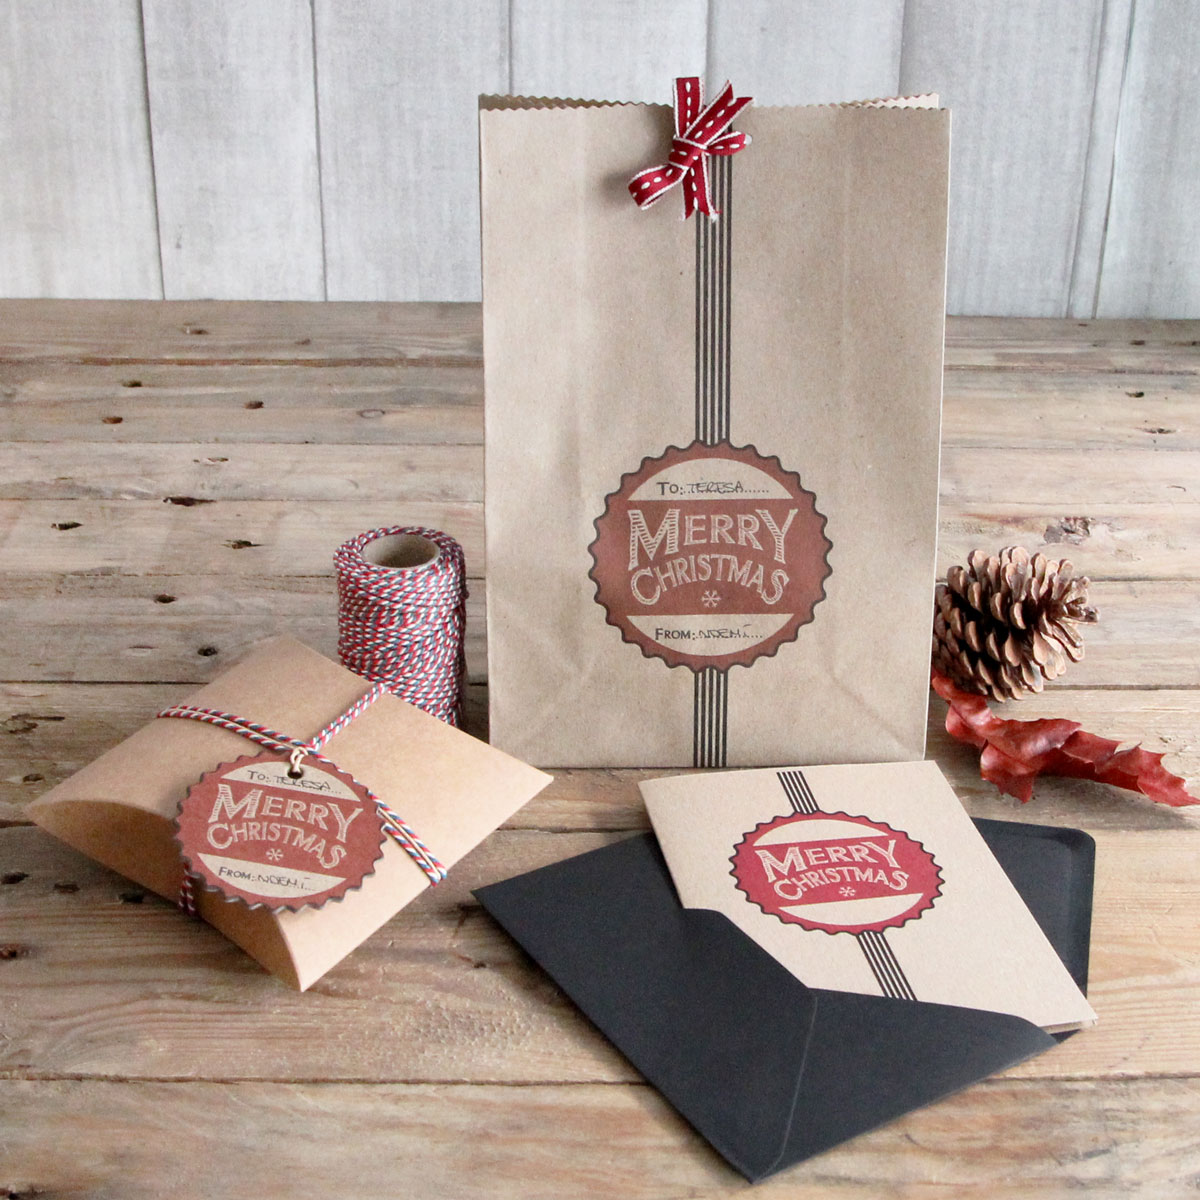 Mr_wonderful_shop_decoracion_navidad_2014_028